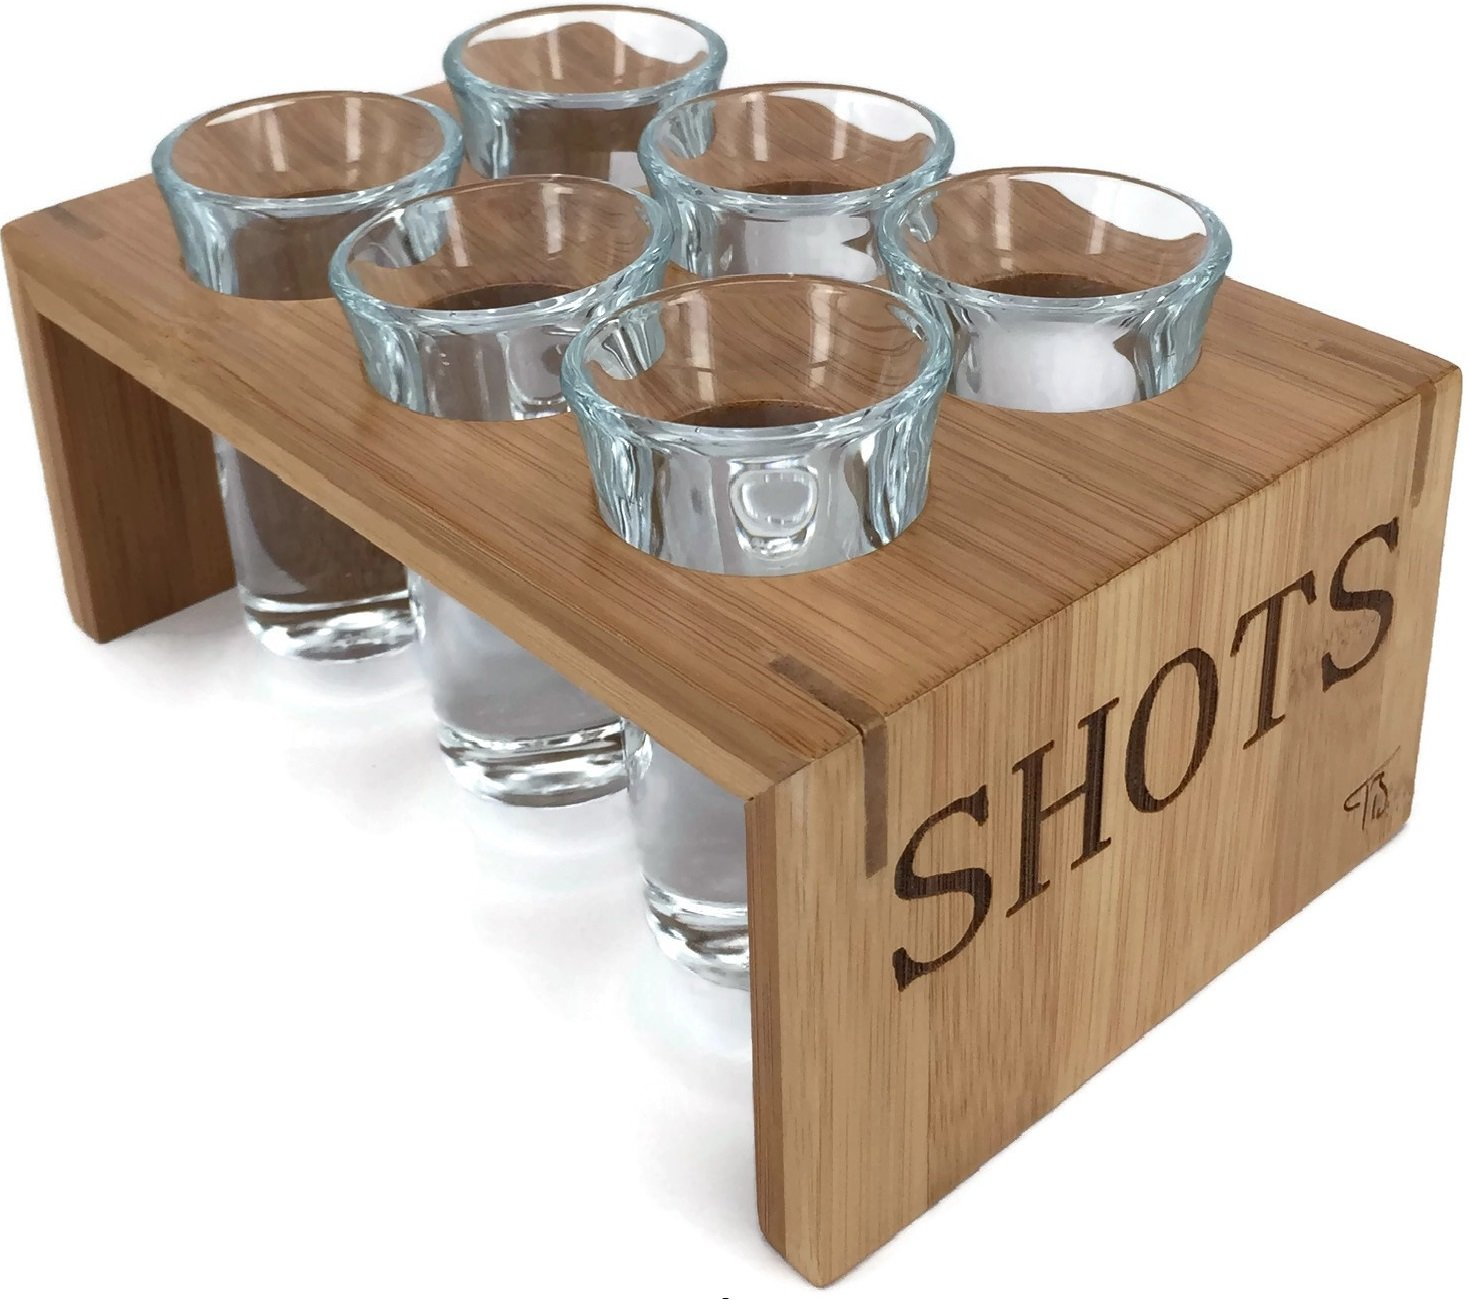 Shot Glass Set (6 Glasses) in Stylish Vintage Bamboo Shot Glass Holder - 1 Ounce Glasses - Glassware and Shot Stand - Professional Look - Pro Or Amateur Bartenders - Best Gift Ideas (Crystal Clear) by Trendy Bartender